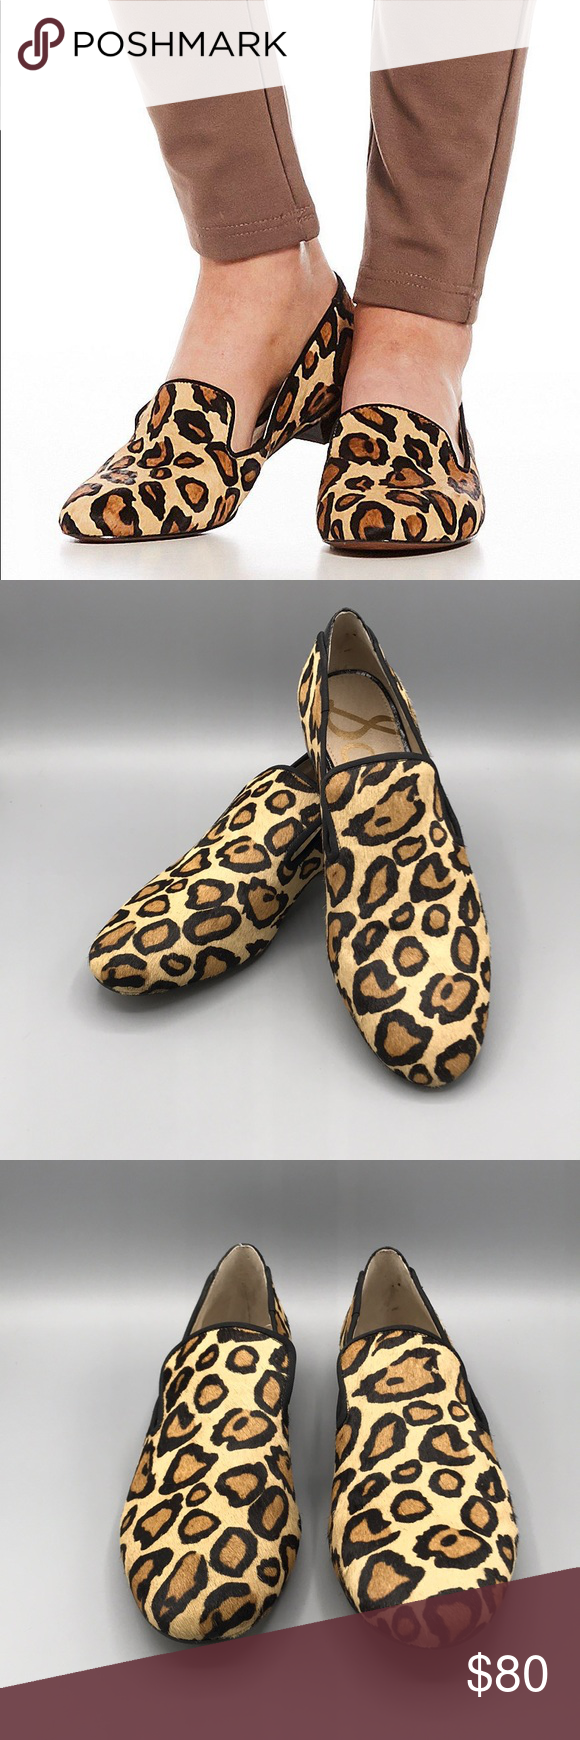 f267a073aec NWOT Sam Edelman  Jordy  Loafer Sam Edelman  Jordy  Loafer. Authentic calf  hair. 1-inch heel. Leather soles. Padded insoles. In new condition - no  damage or ...